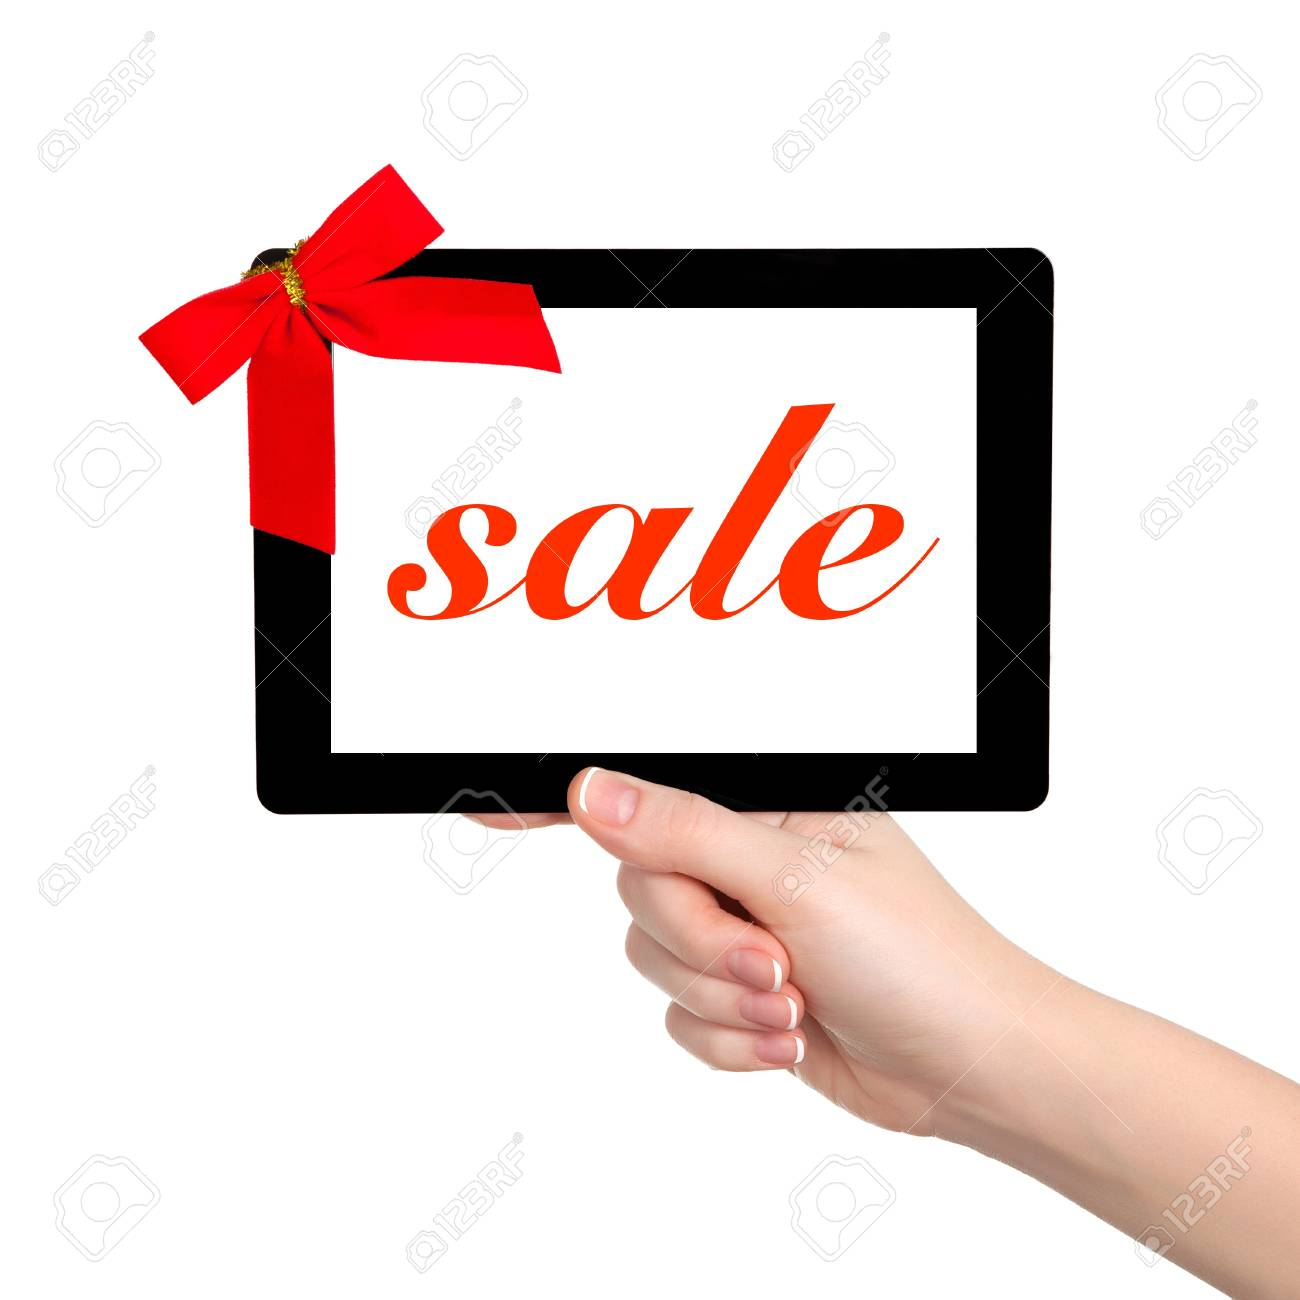 female hands holding a tablet touch computer gadget with isolated screen and a red gift bow Stock Photo - 17512710